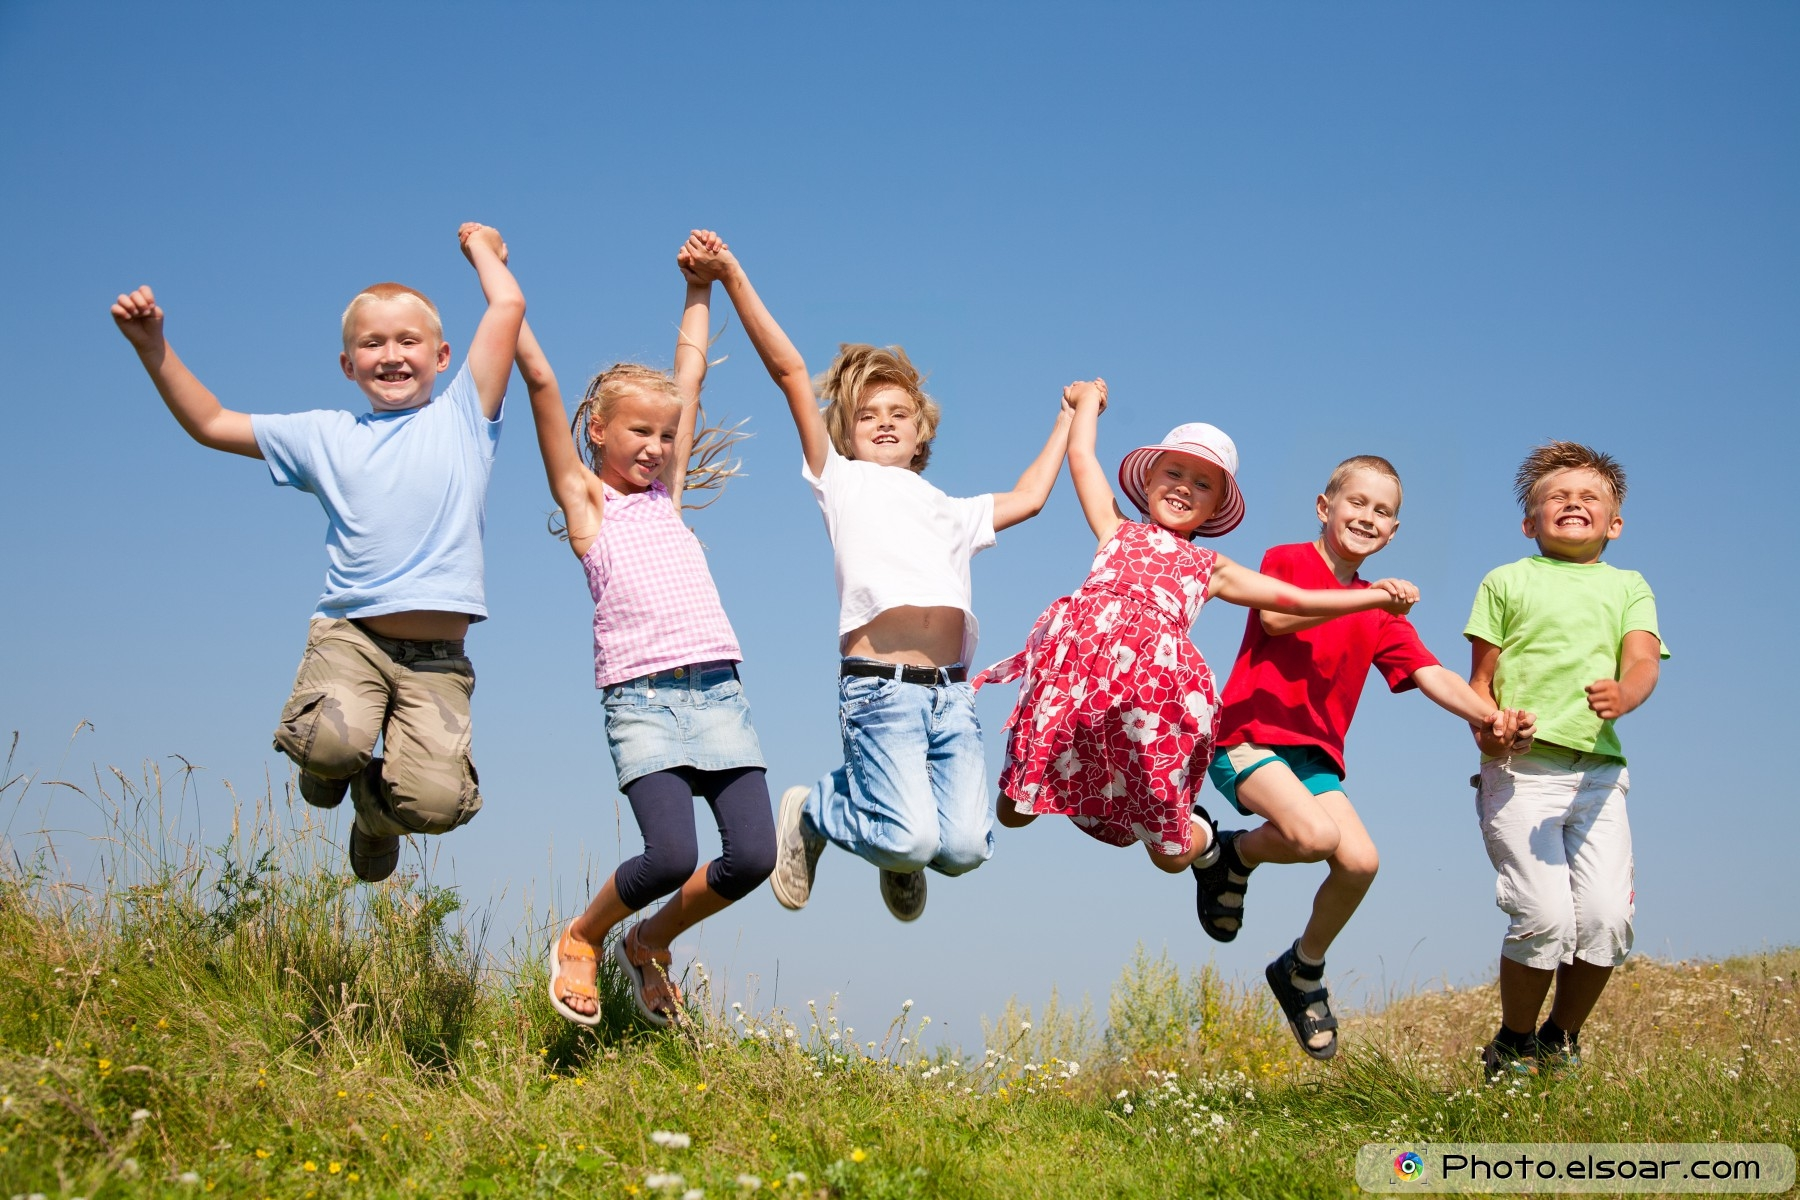 Group-happy-children-jumping-on-summer-meadow